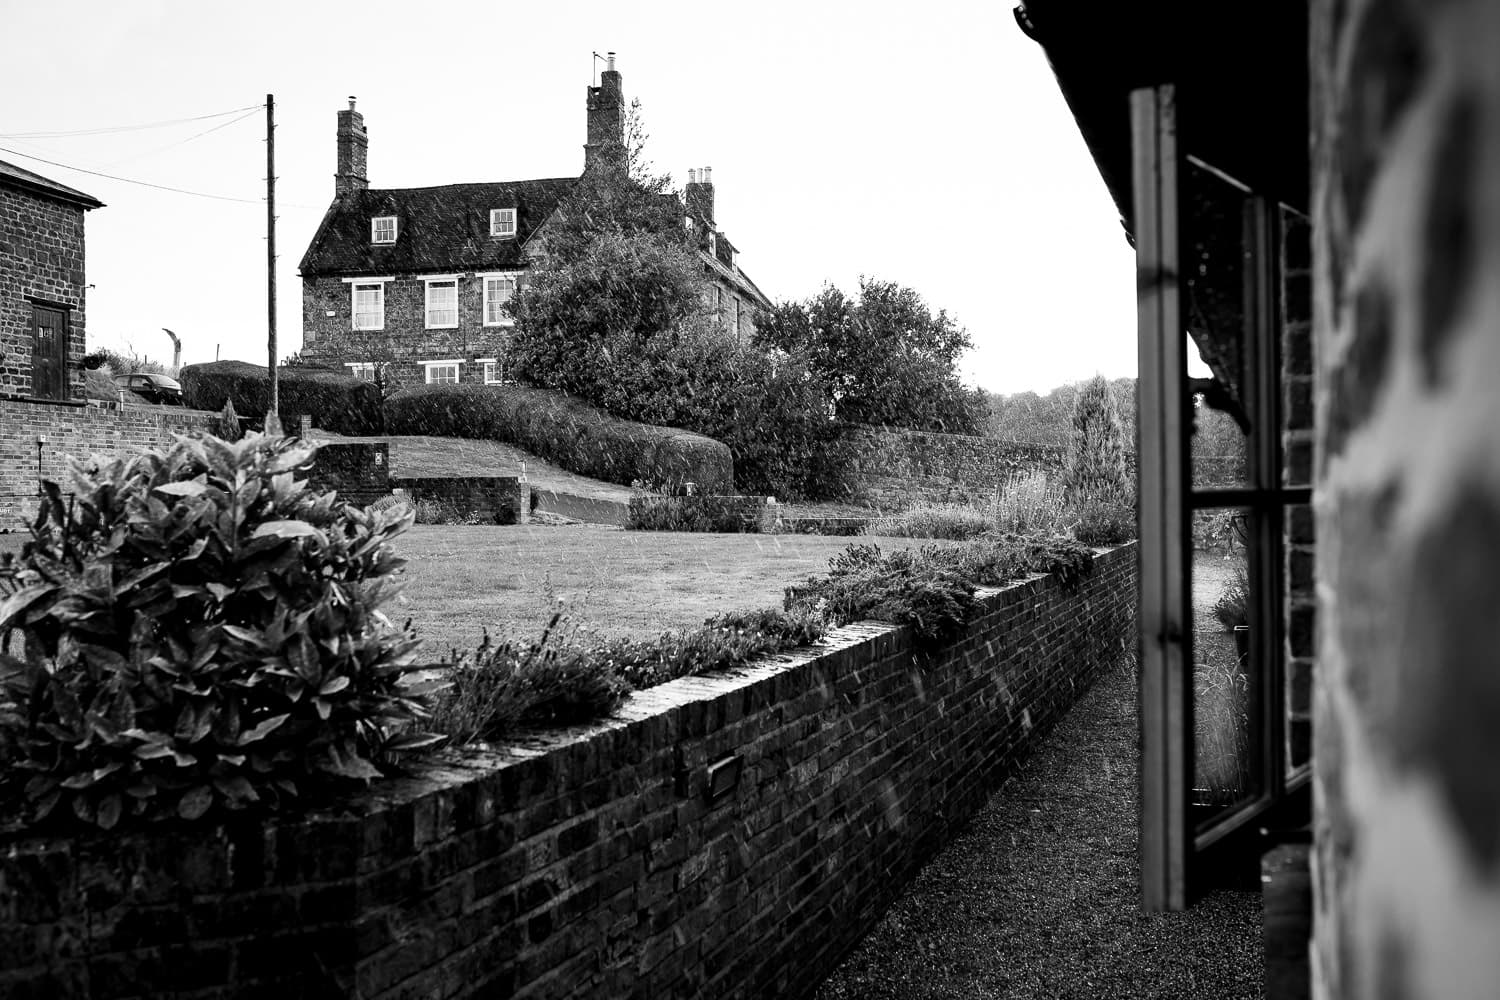 A rainy day at The Granary at Fawsley Wedding venue